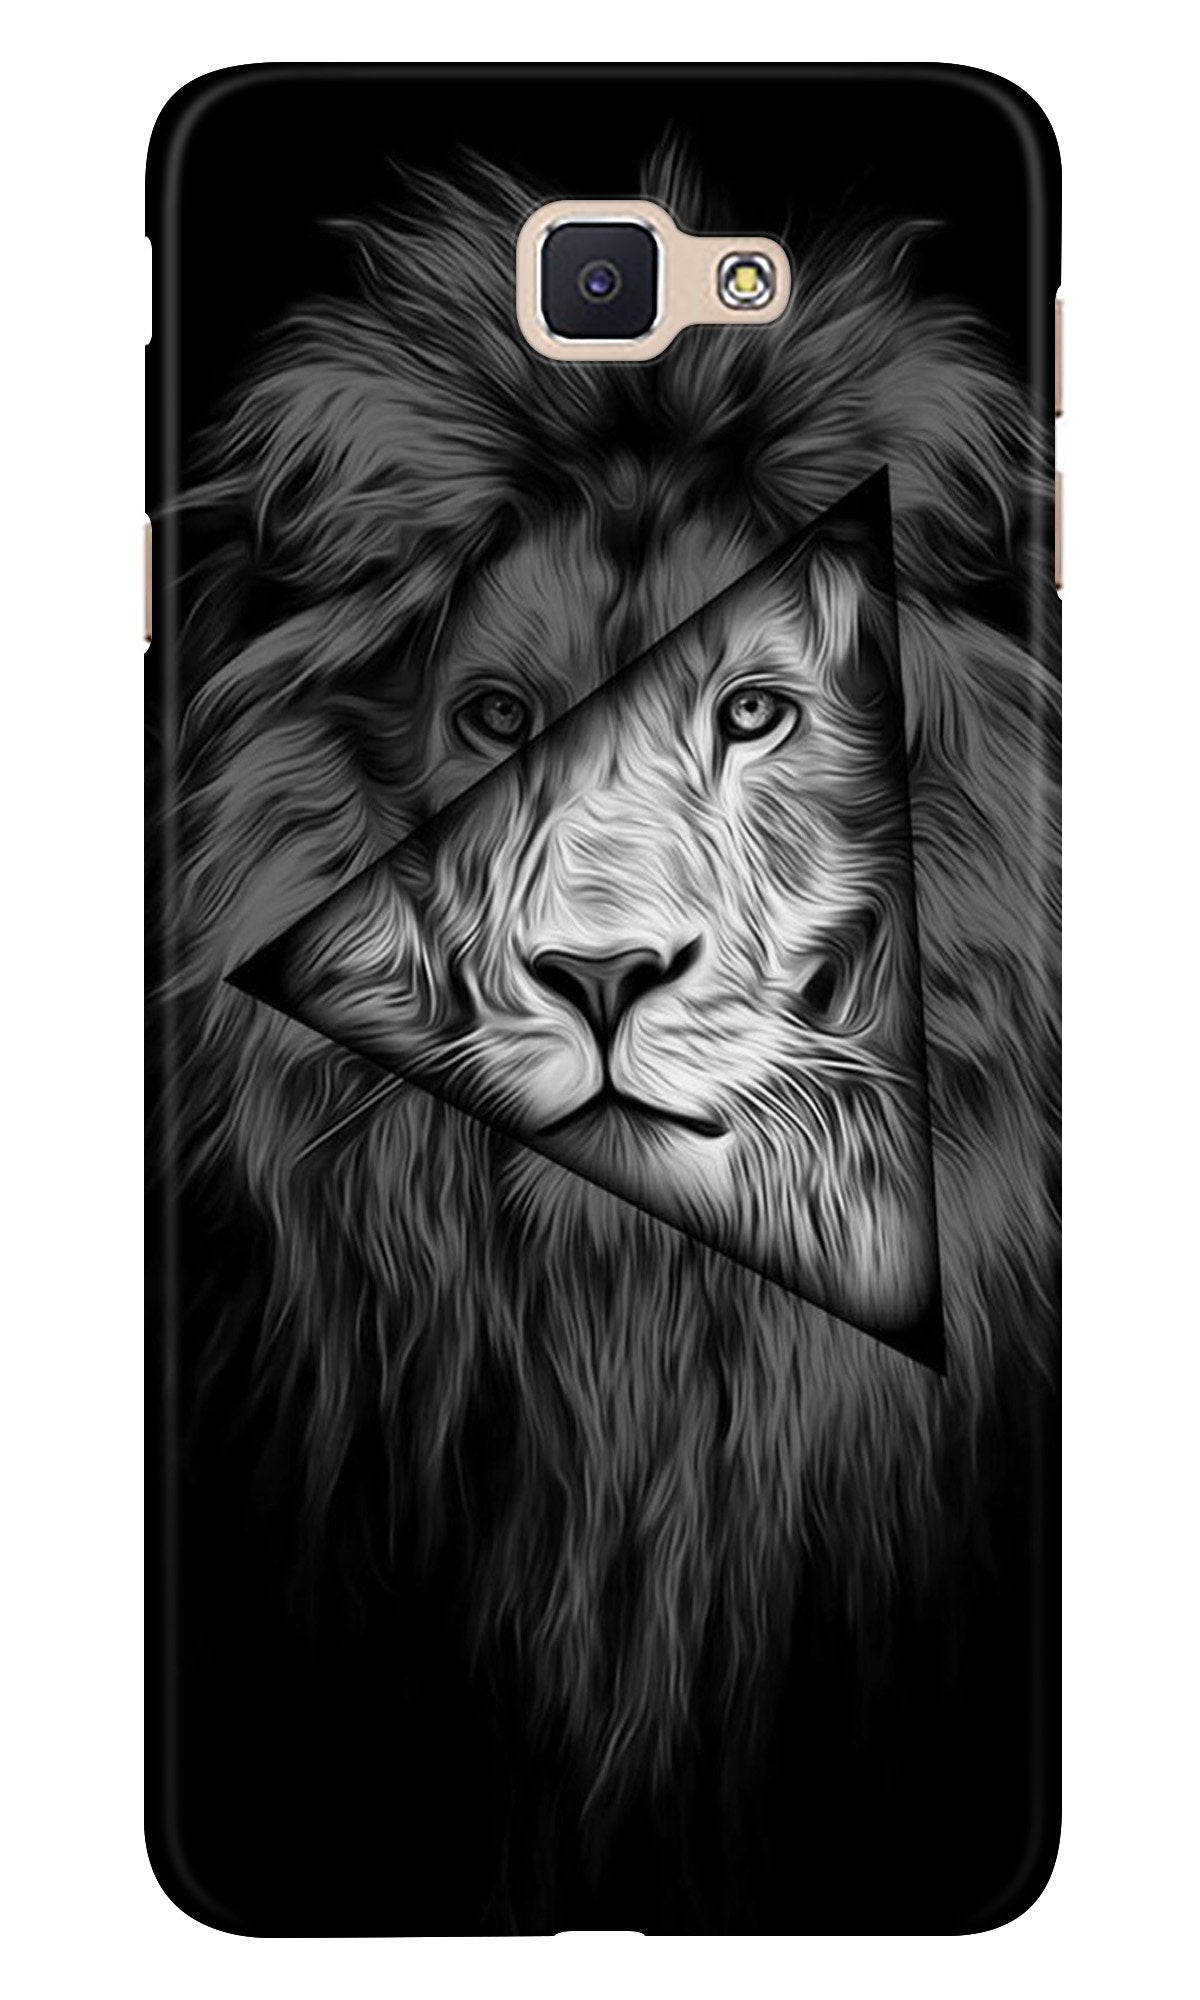 Lion Star Case for Samsung Galaxy A9 Pro (Design No. 226)